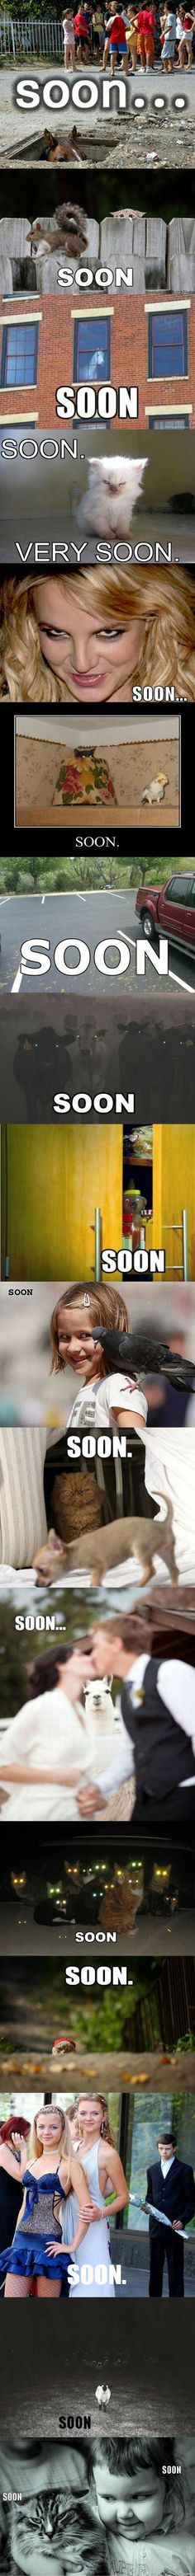 "Hilarious ""soon"" pictures"